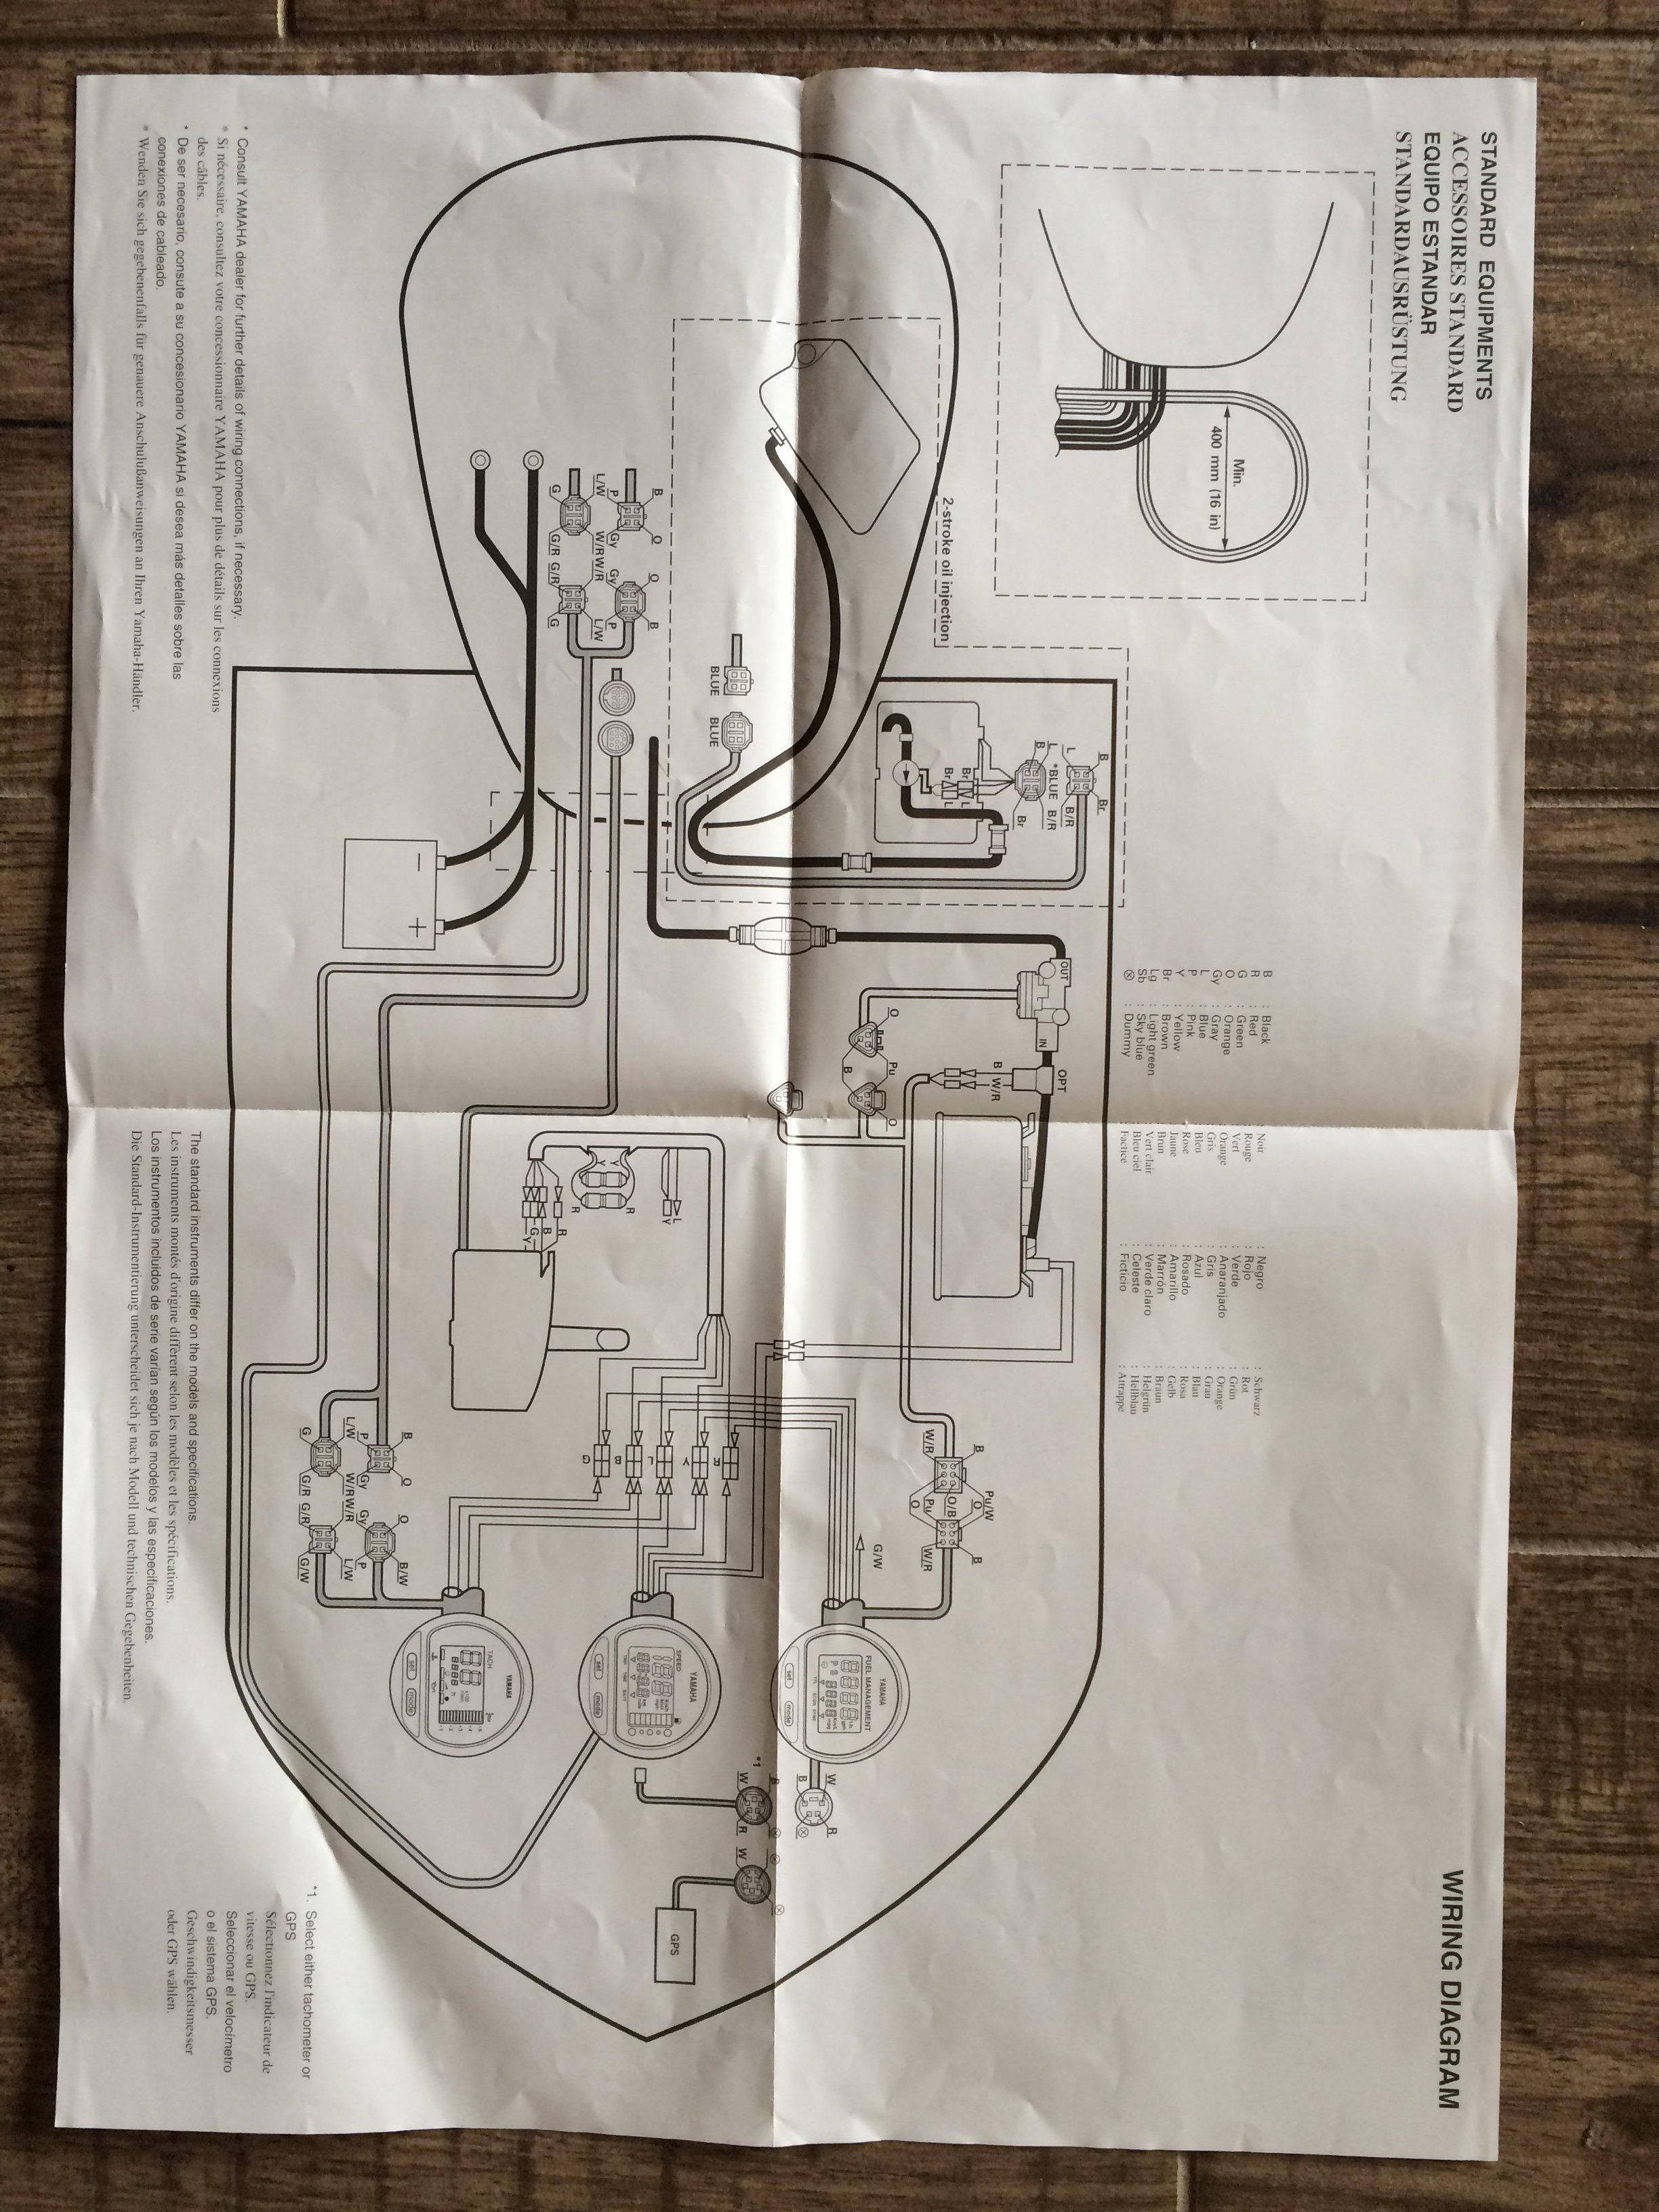 Electrical    Wiring       Diagrams    for a 2004 FD GS 201 Does